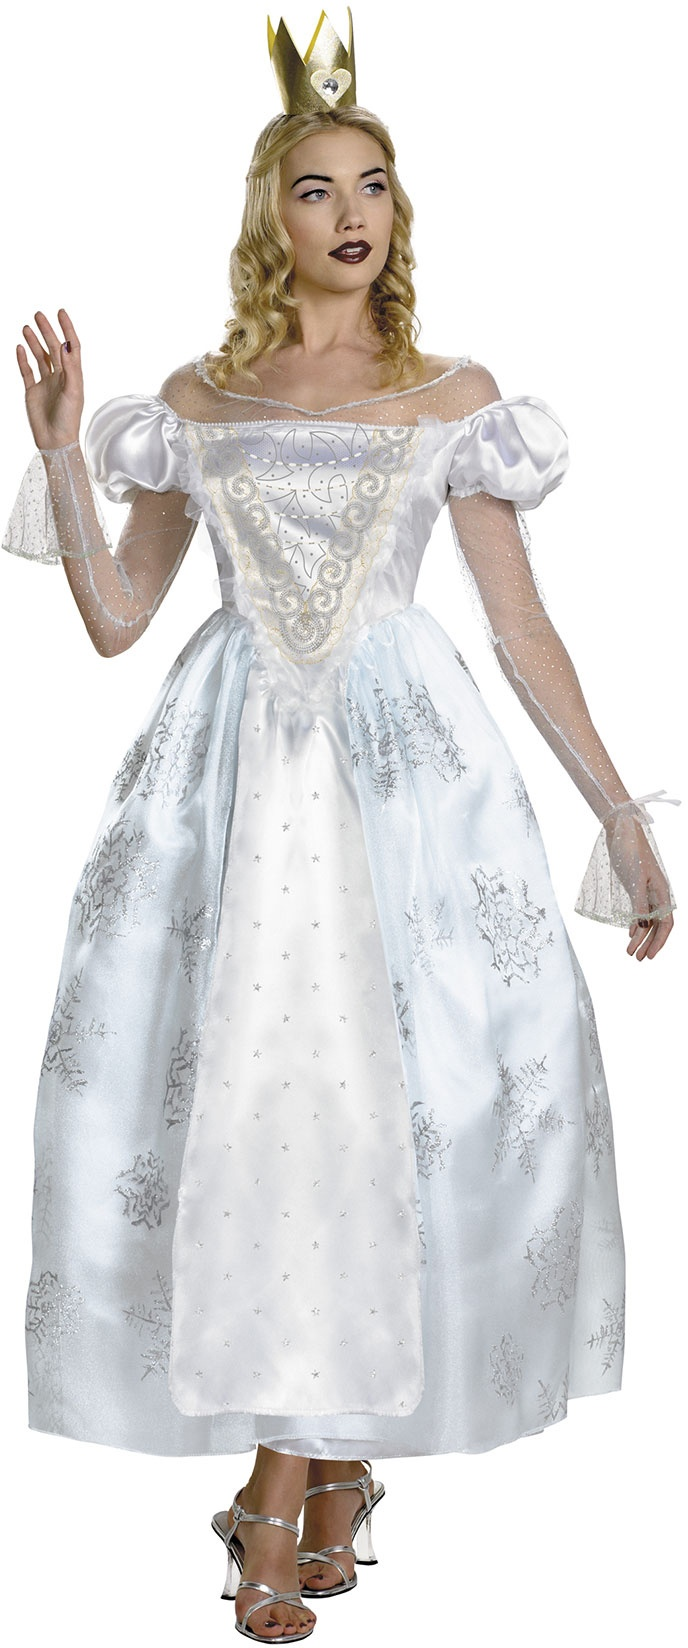 White Queen Deluxe Costume - Alice in Wonderland